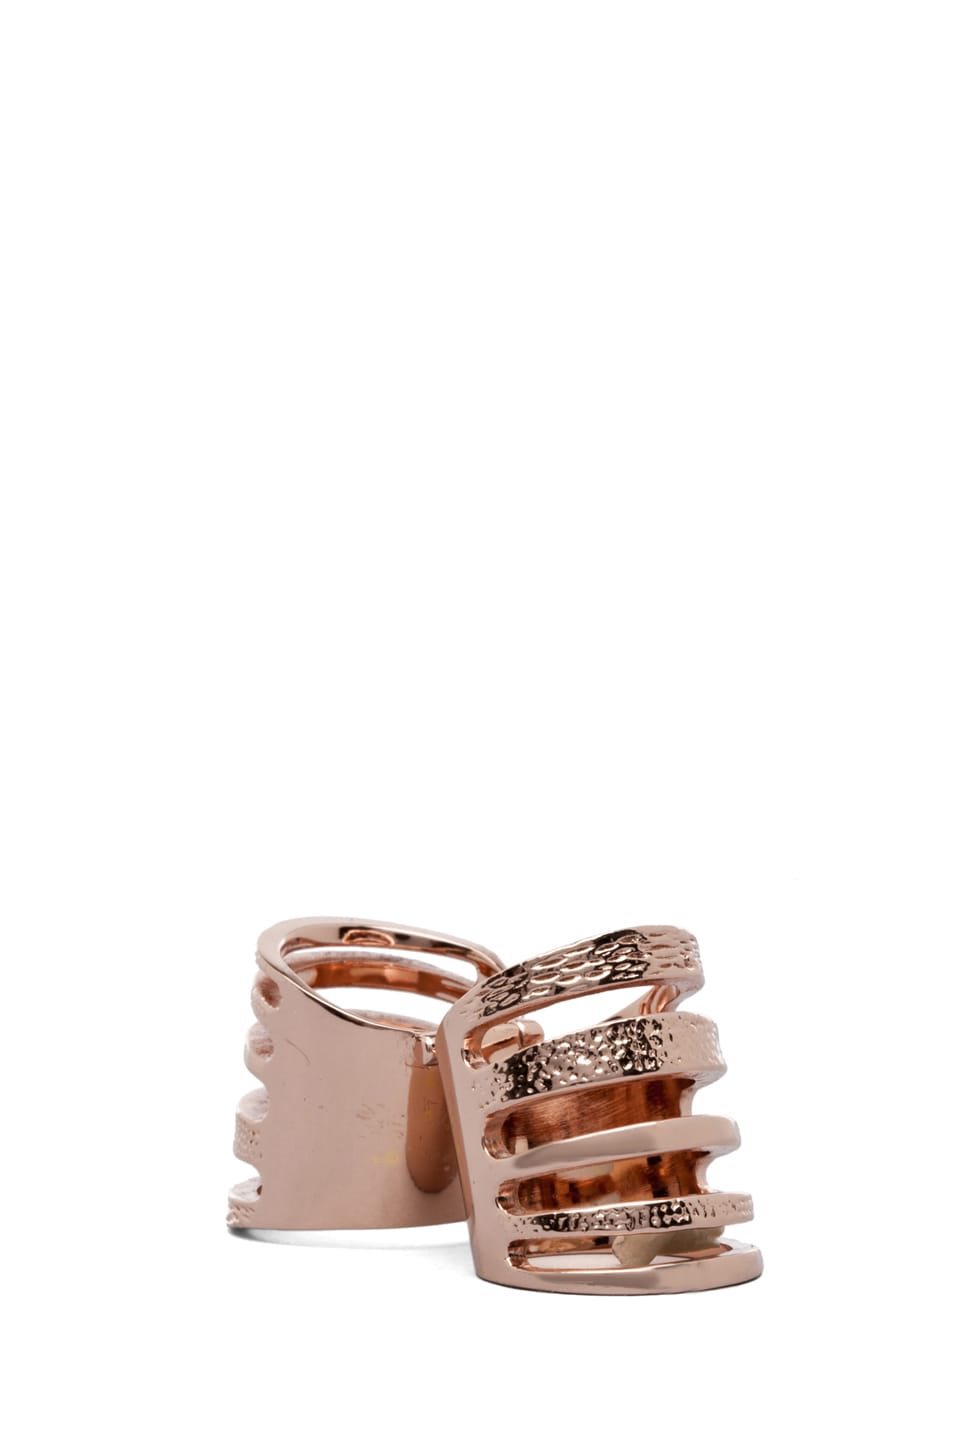 Image 4 of Pamela Love PINK PARTY Exclusive Double Cage Ring in Rose Gold